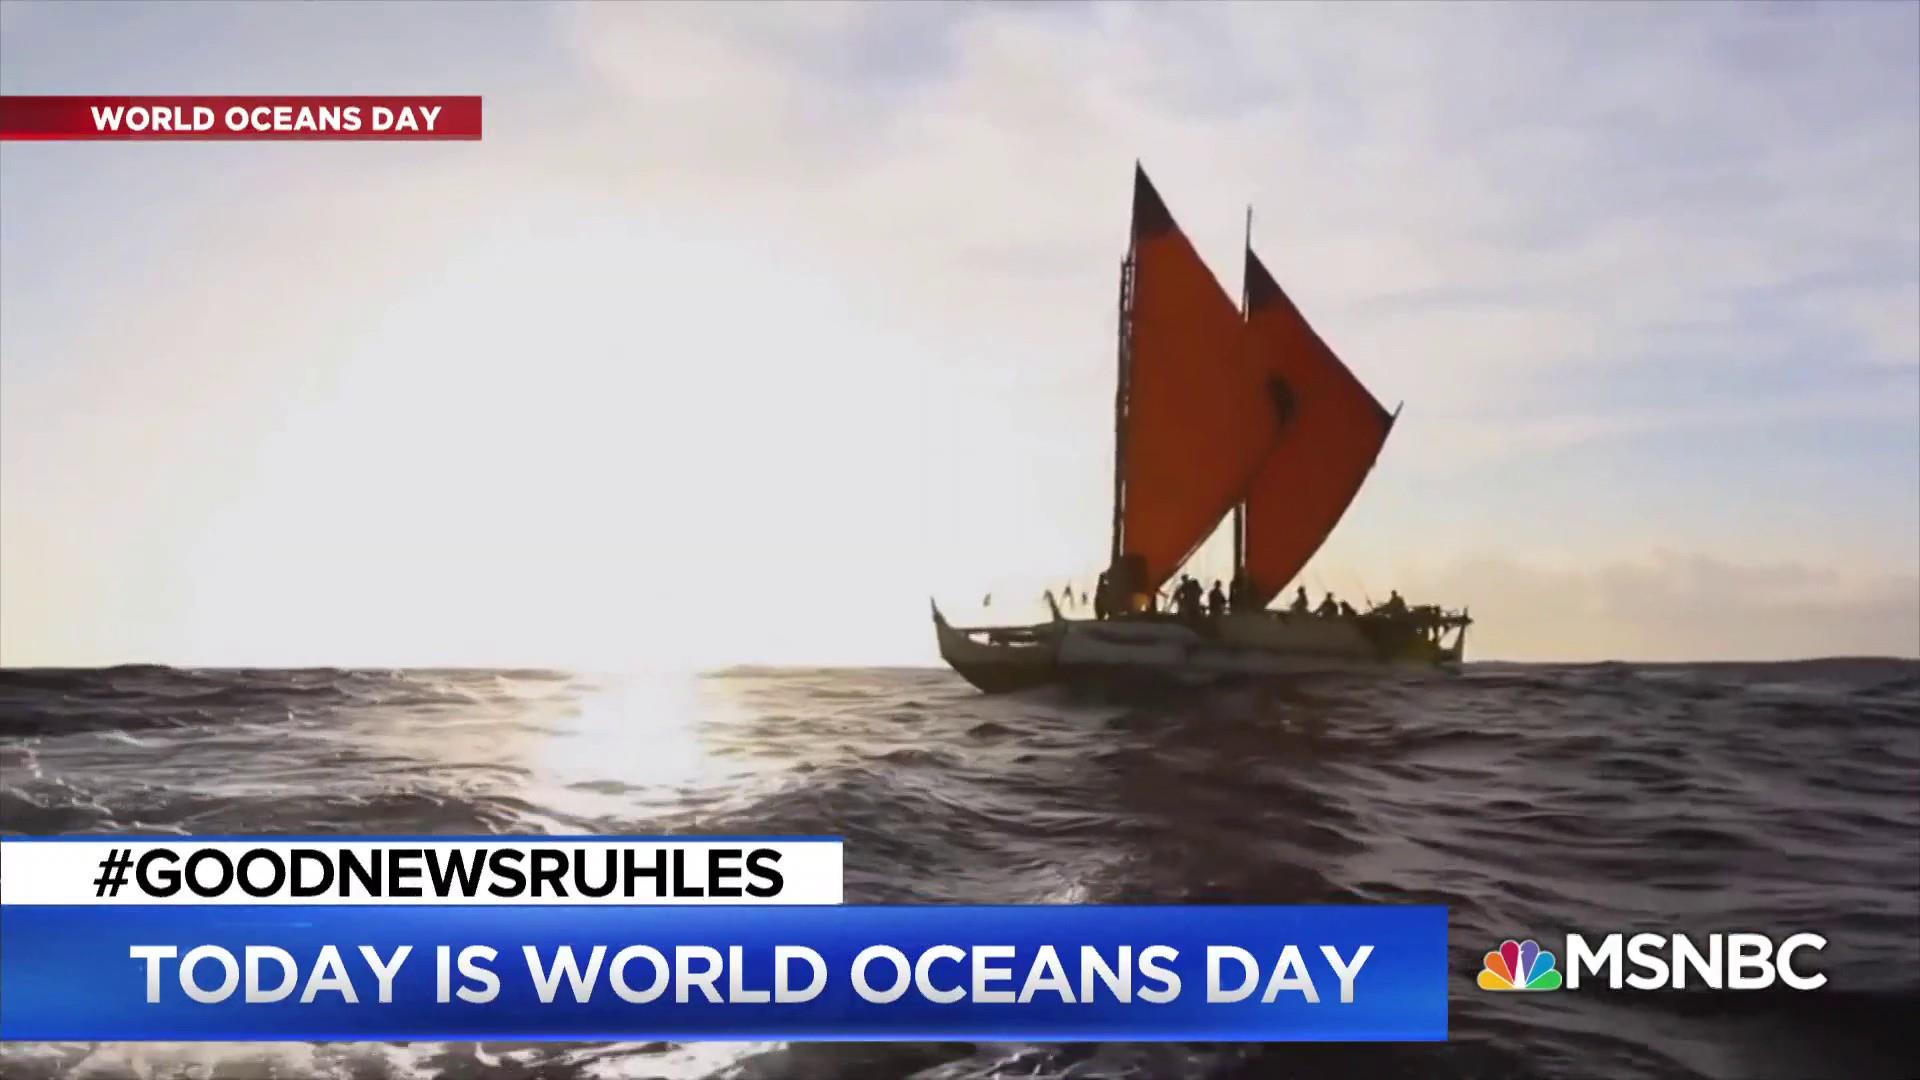 #GoodNewsRUHLES: World Oceans Day